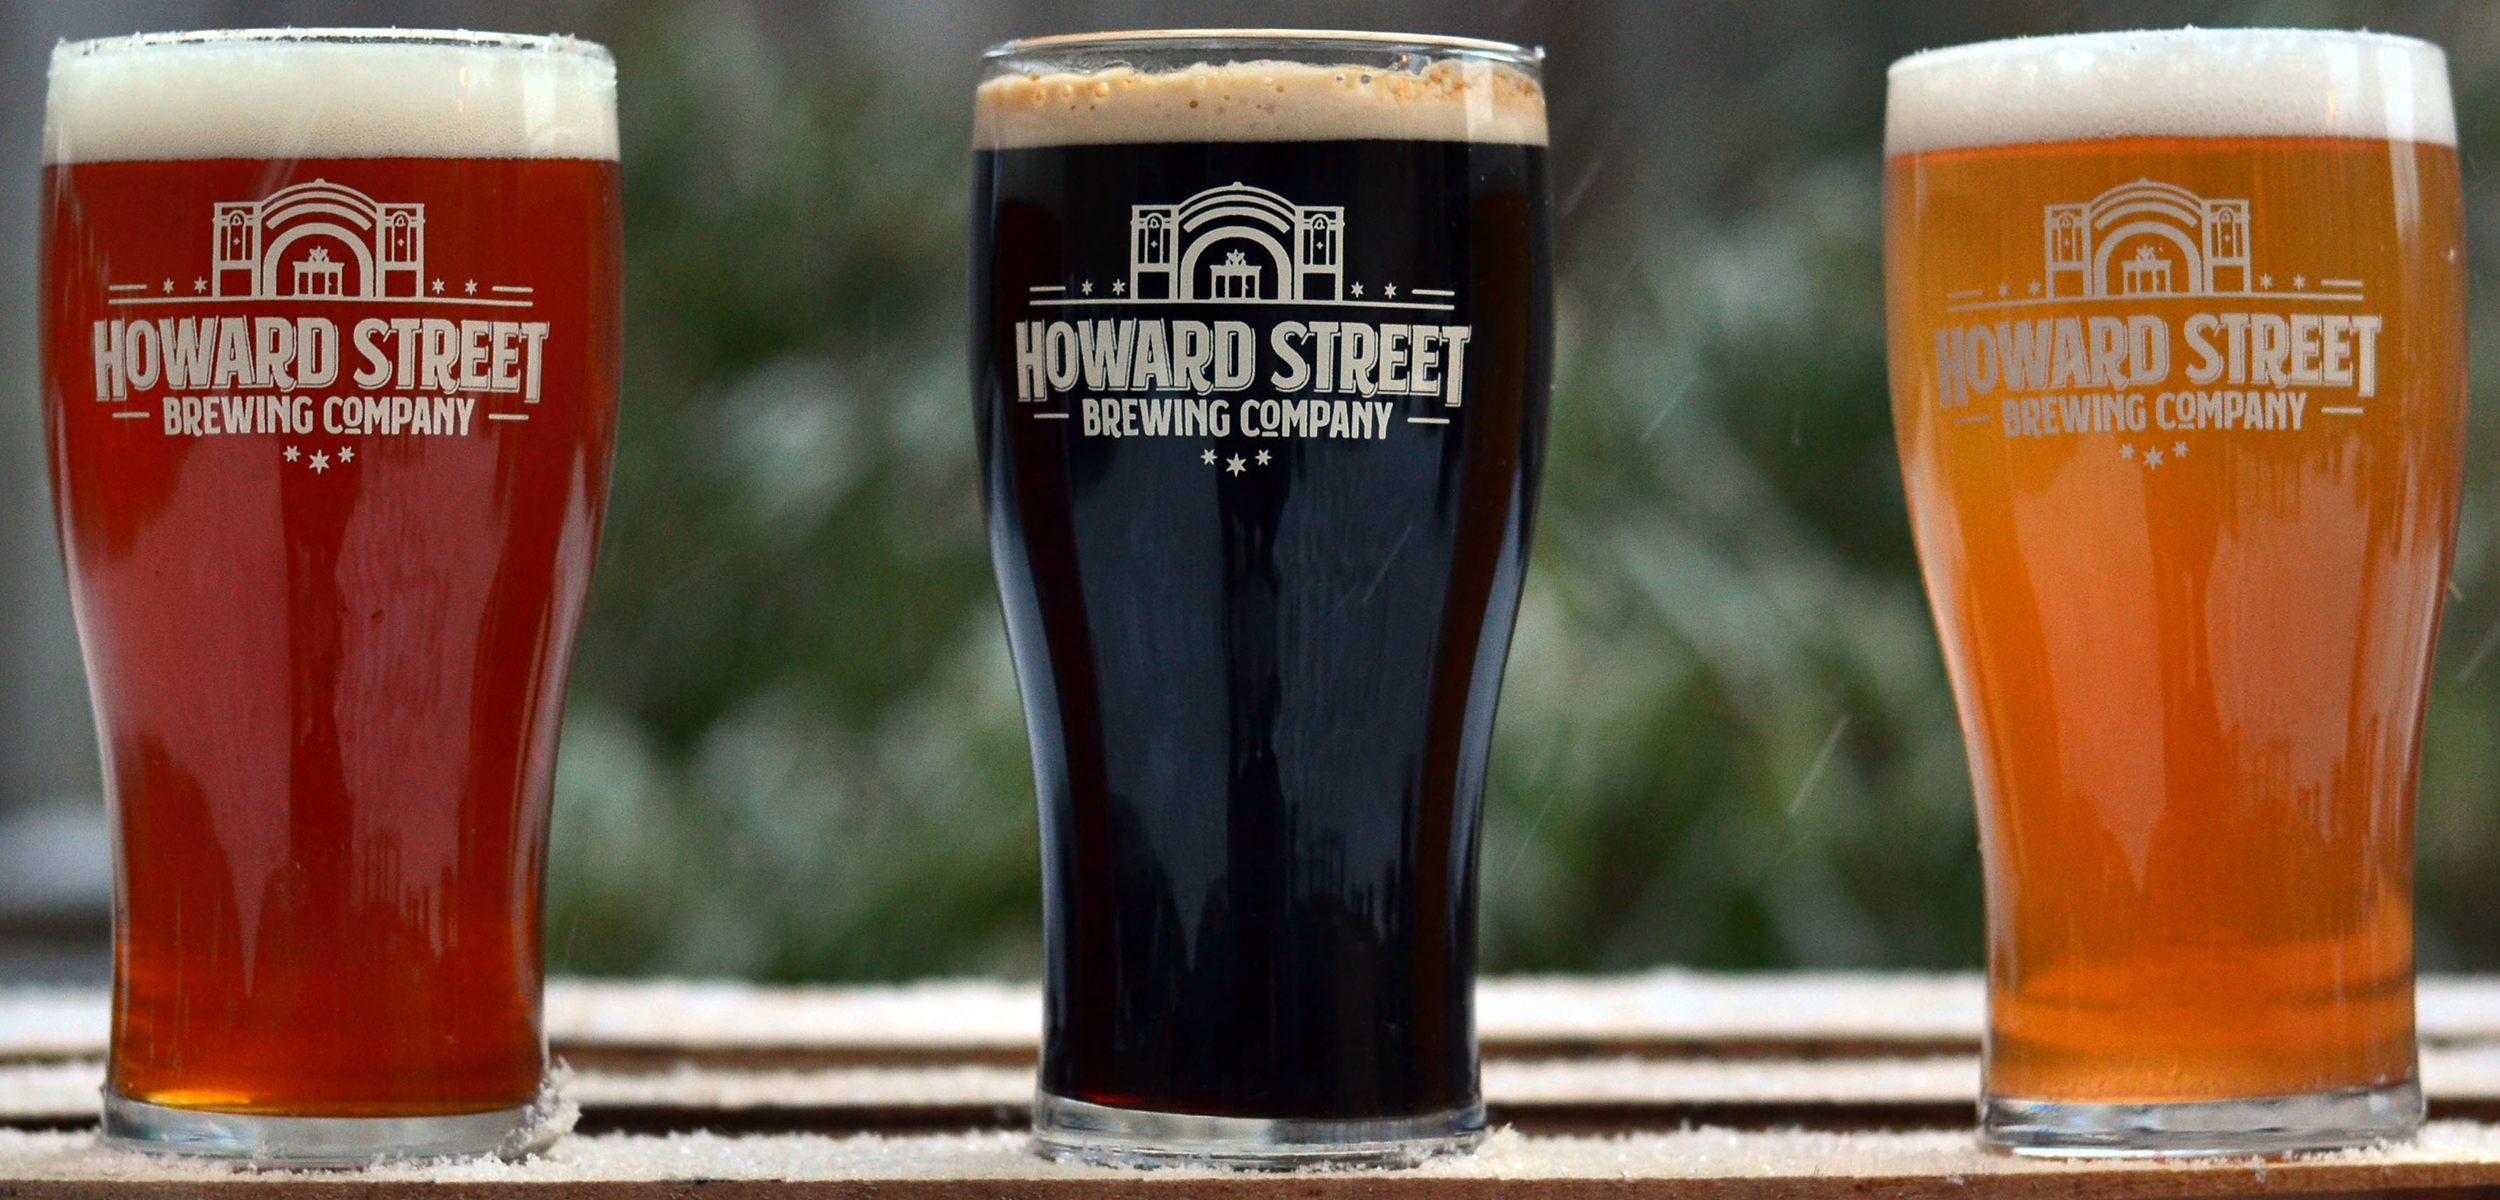 howard_street_brewing_company_logo_image_glasses.png